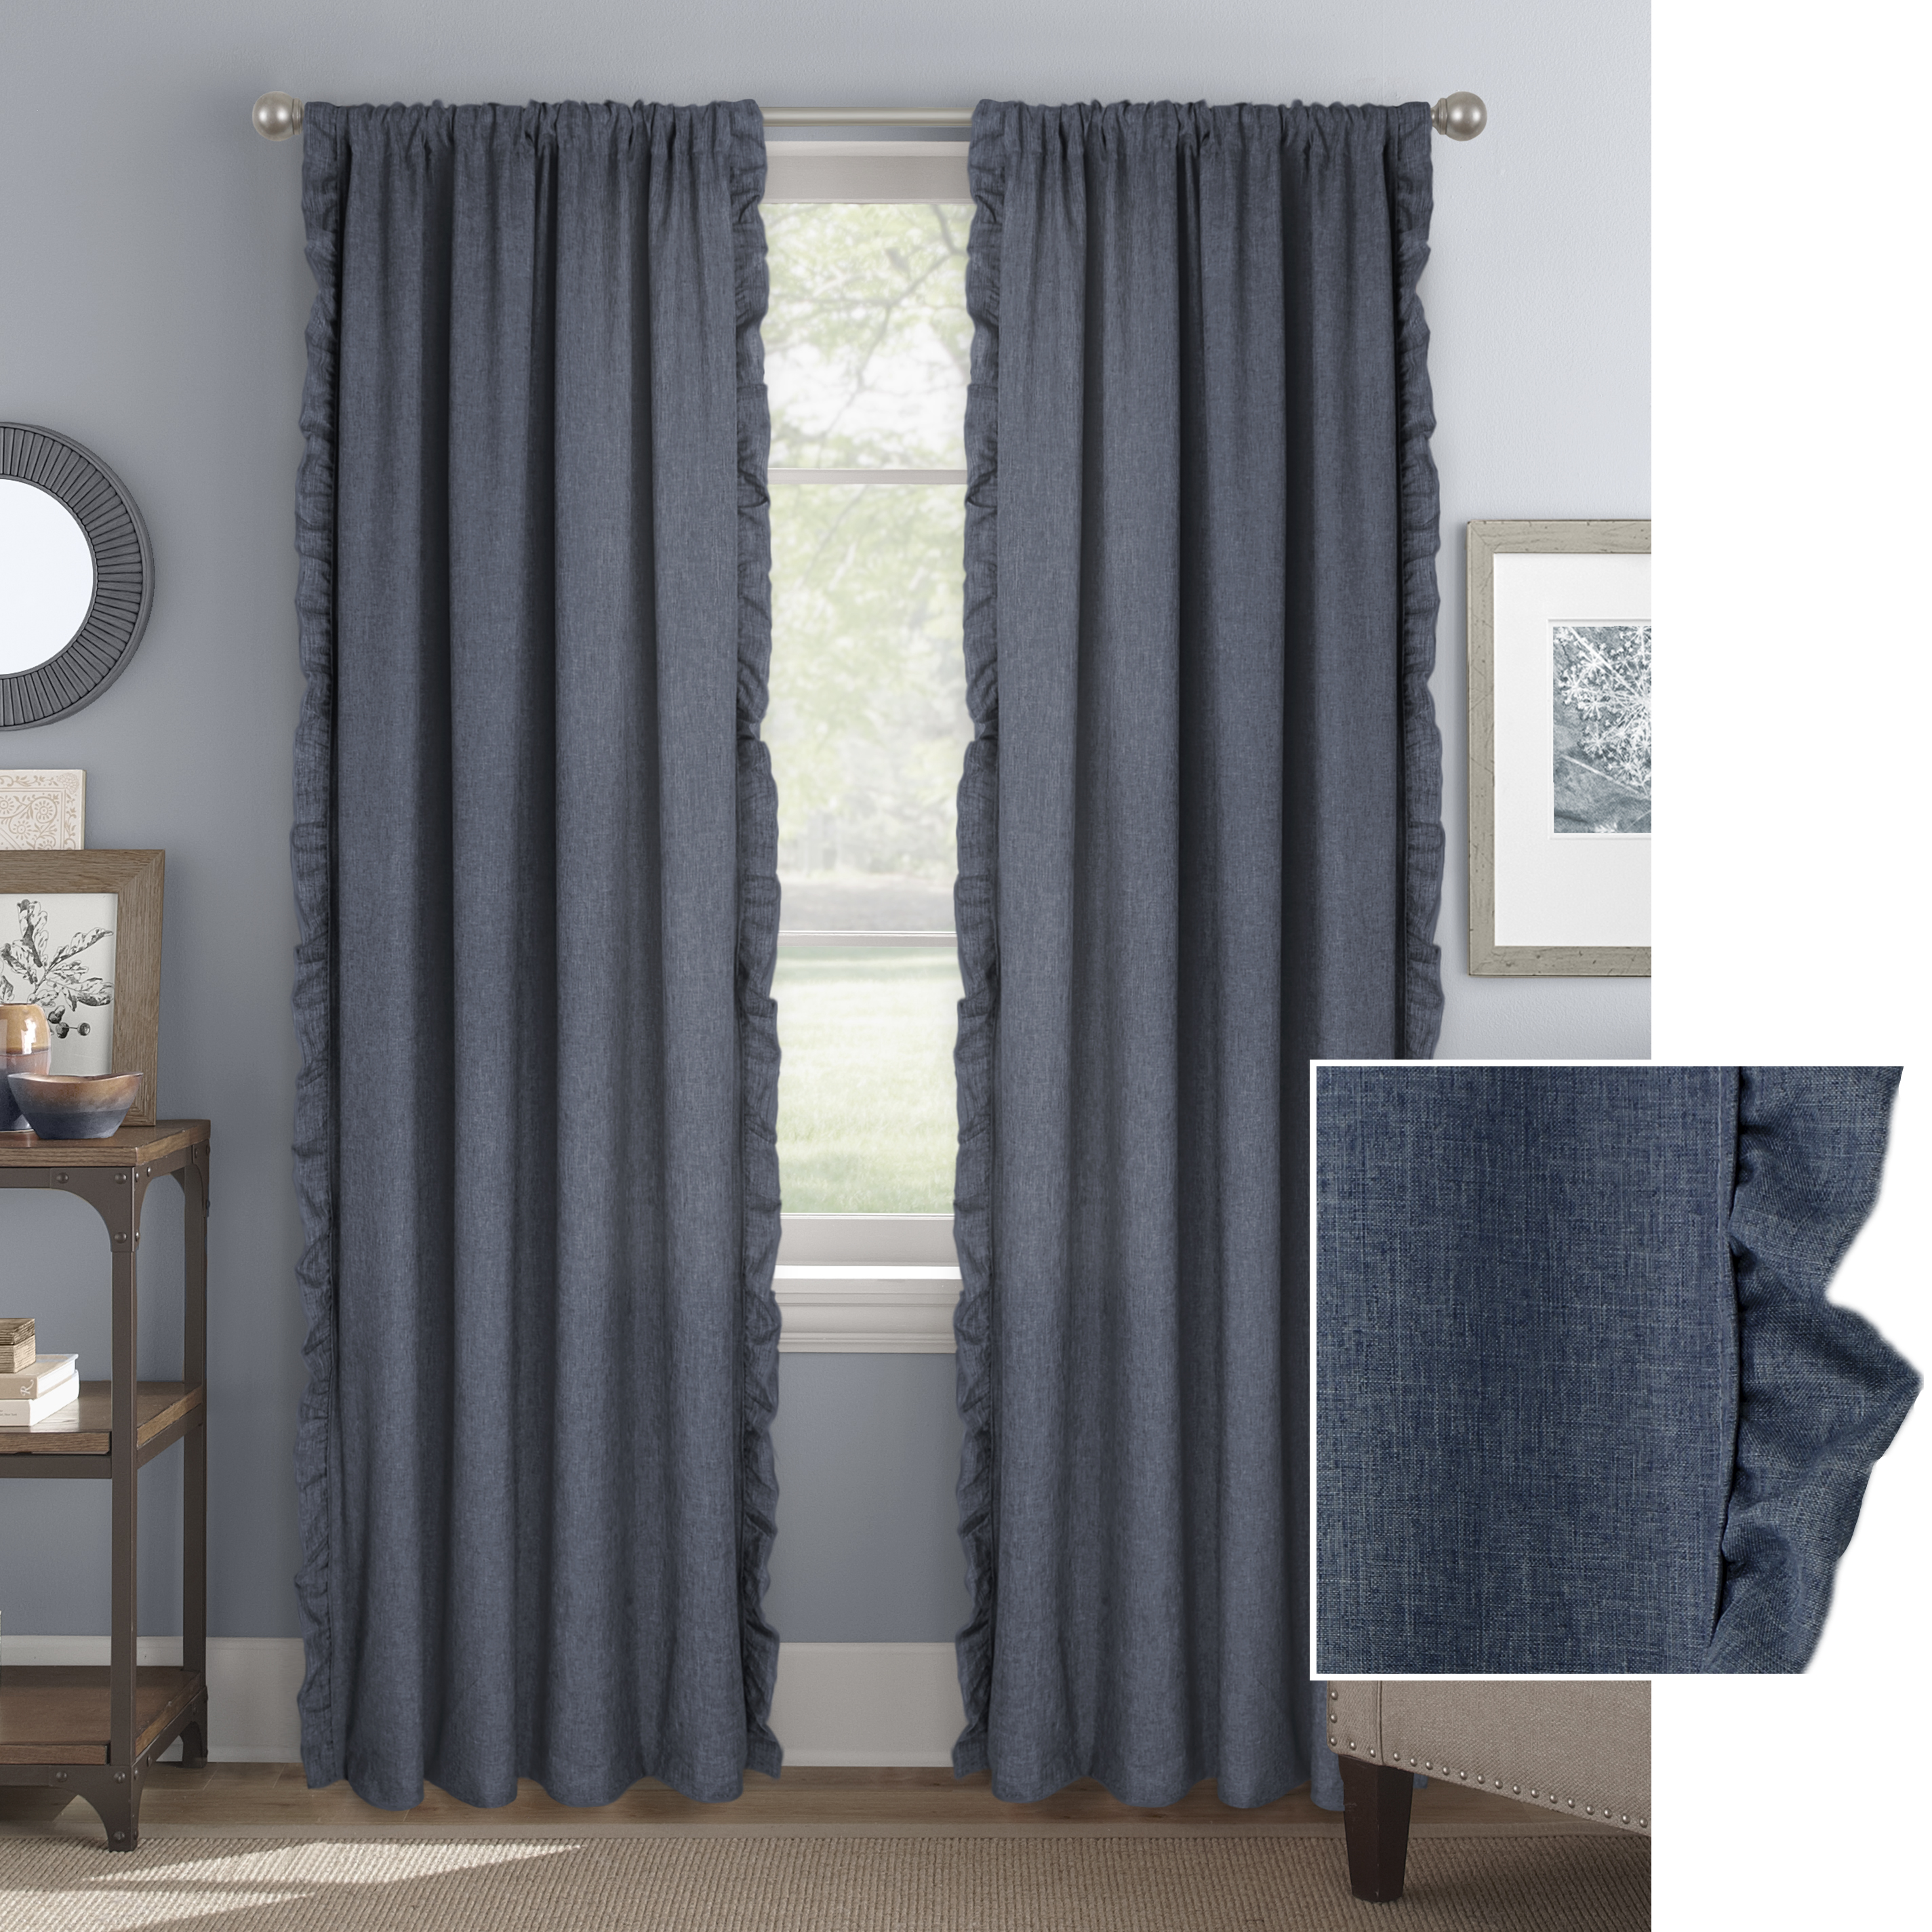 Better Homes & Gardens Vertical Ruffle Window Curtain Panel